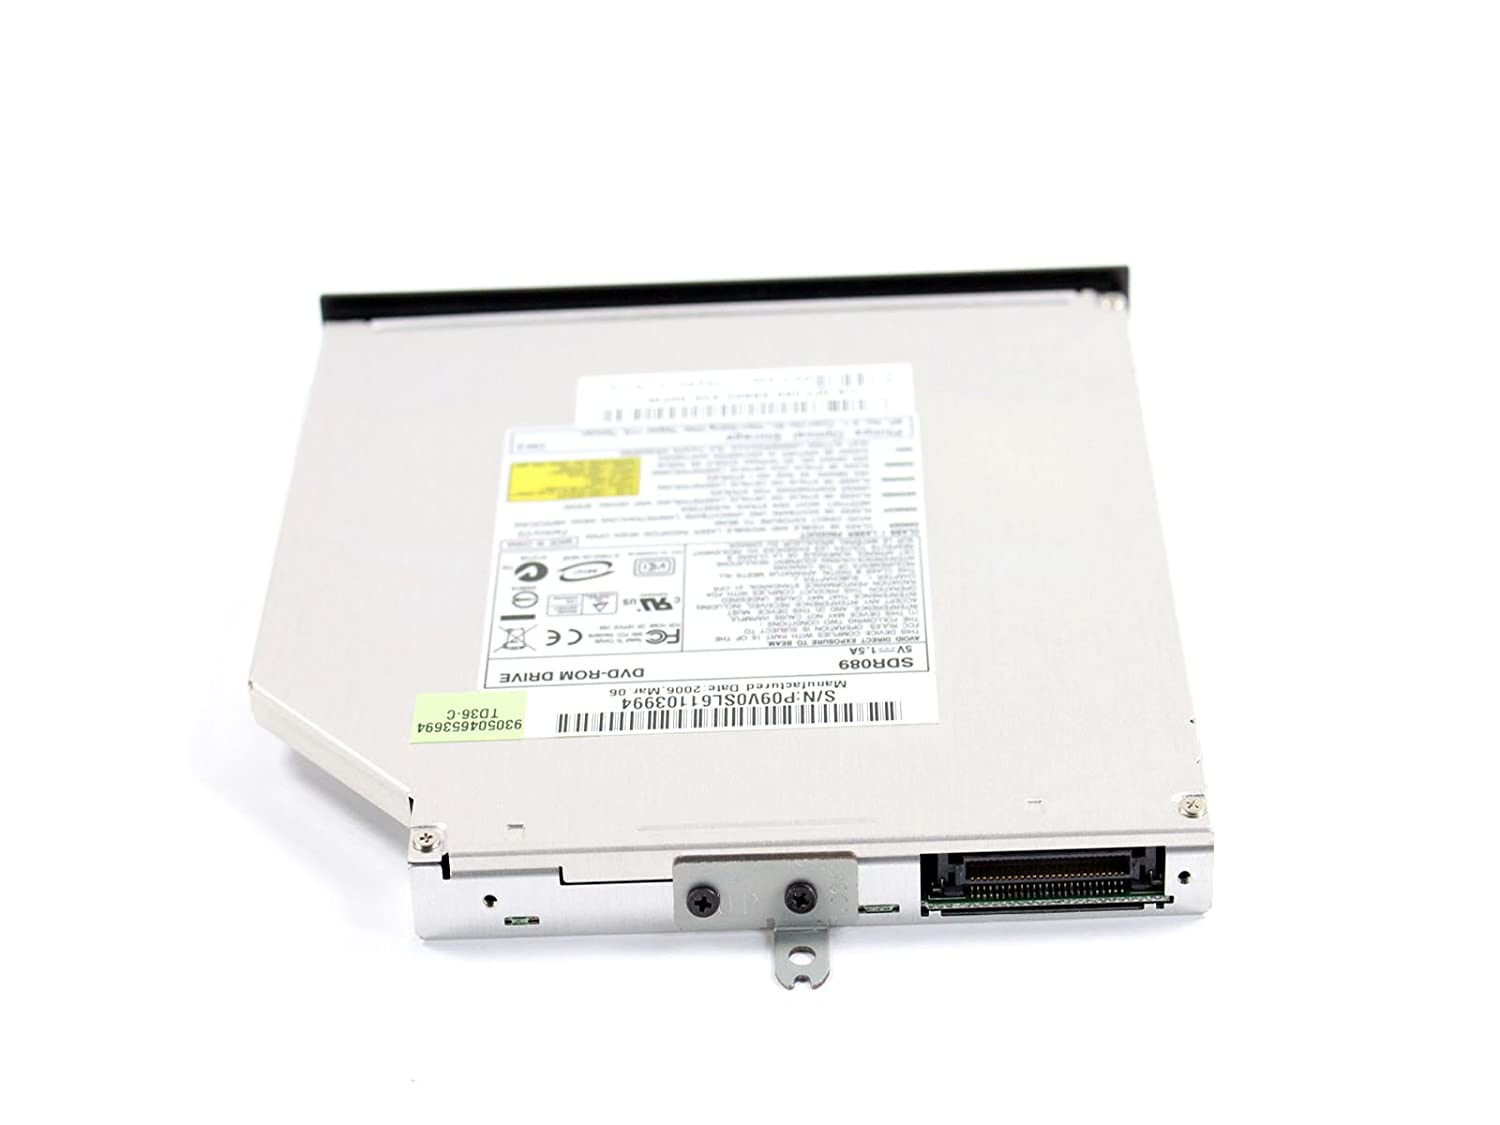 Dell PowerEdge 1850 Philips SDR089 Drivers for PC